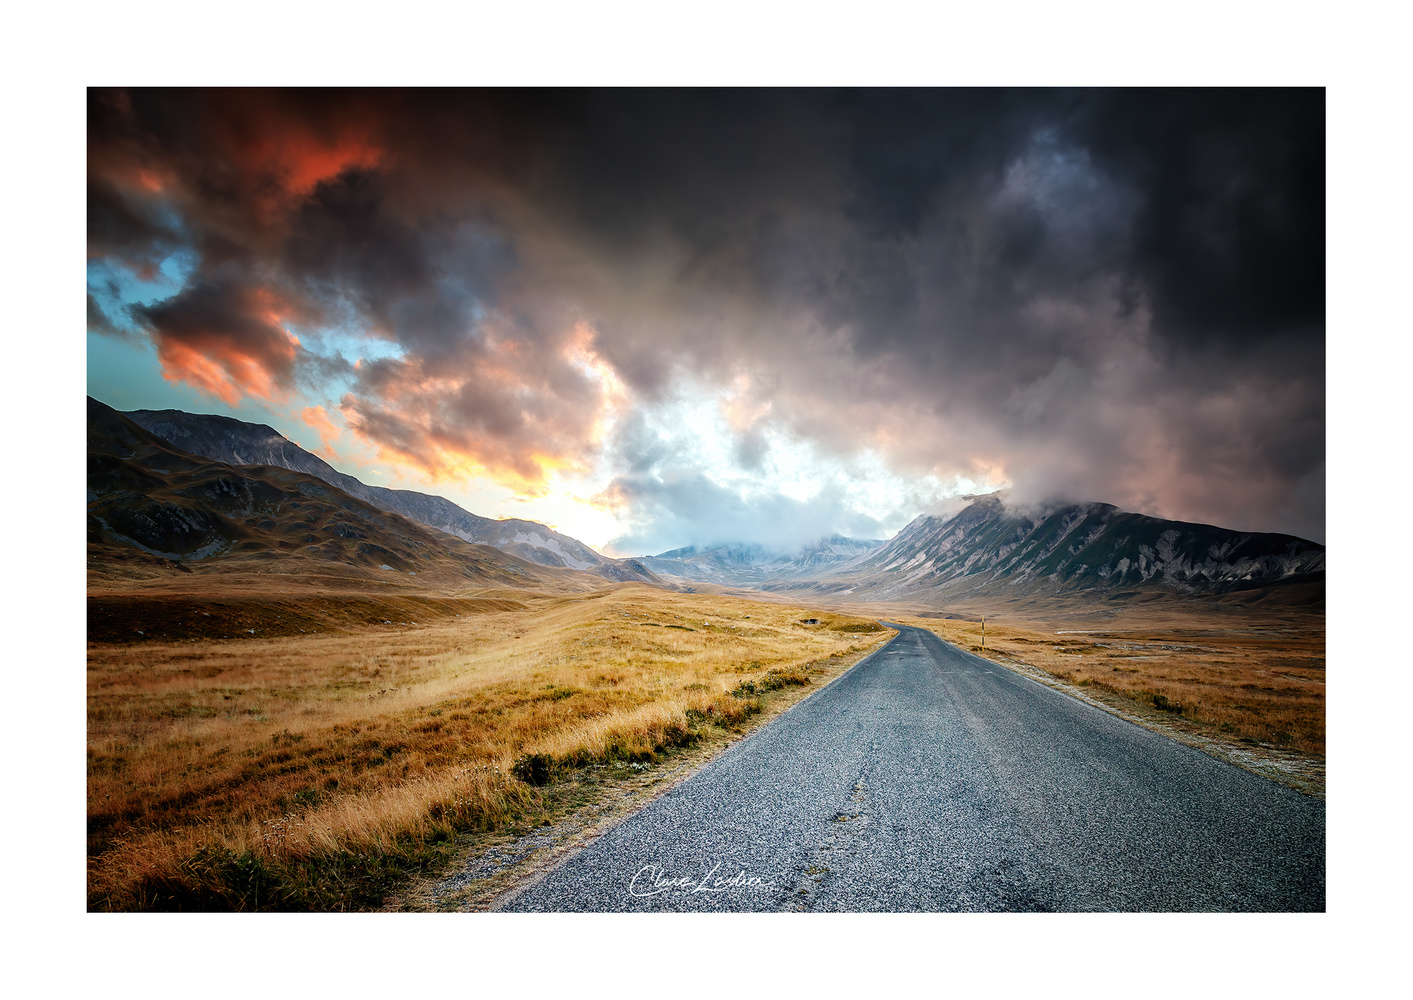 Campo Imperatore by Clare Lusher